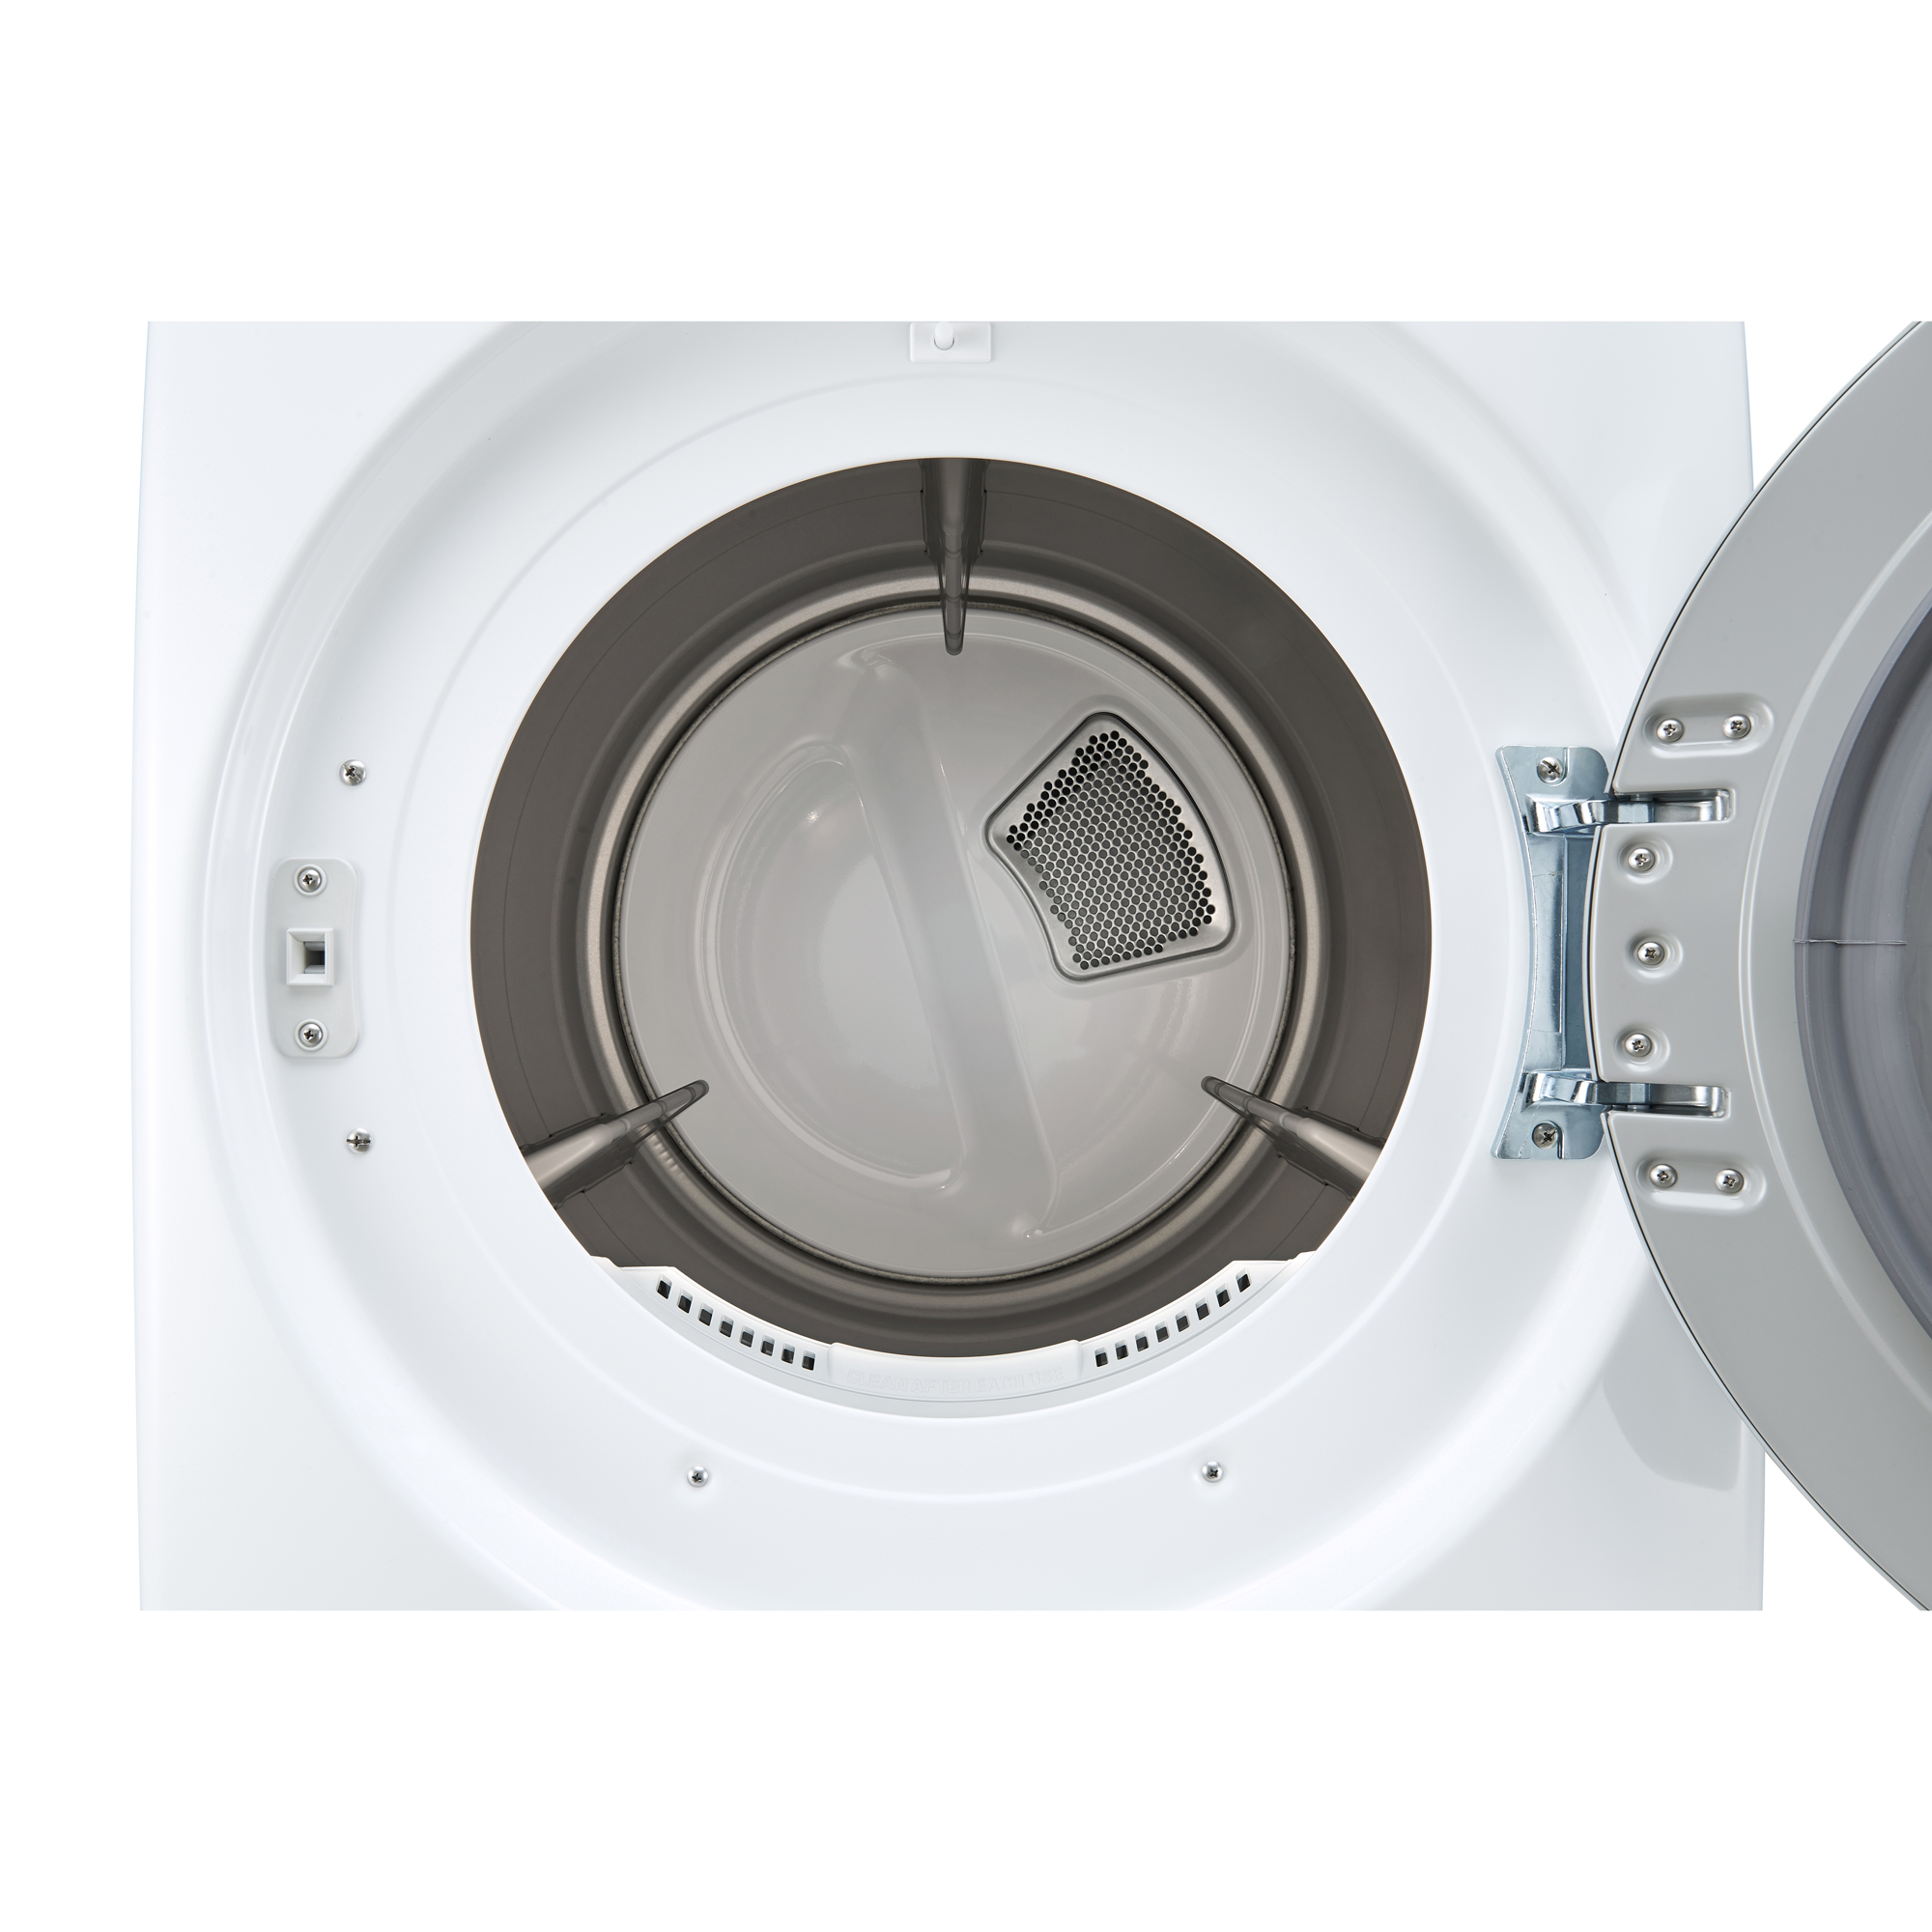 LG DLG3171W 7.4 cu. ft. Capacity Dryer w/ NFC Tag On Technology – White